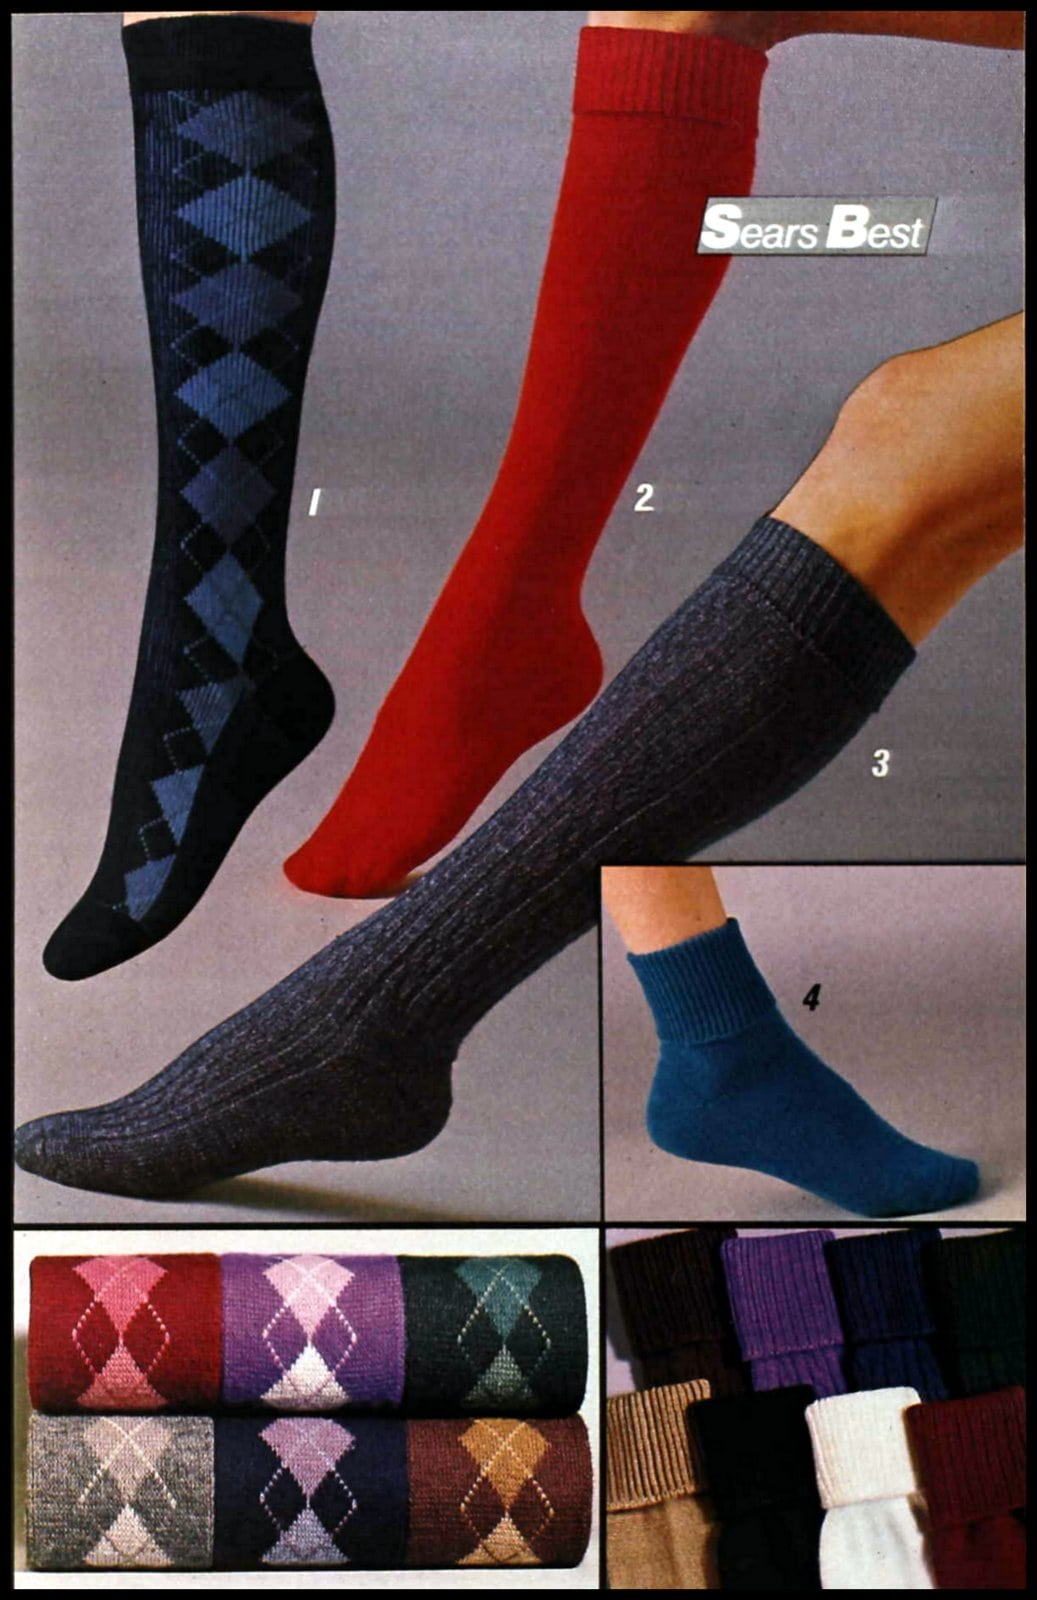 Retro knee sock styles from the late 1980s